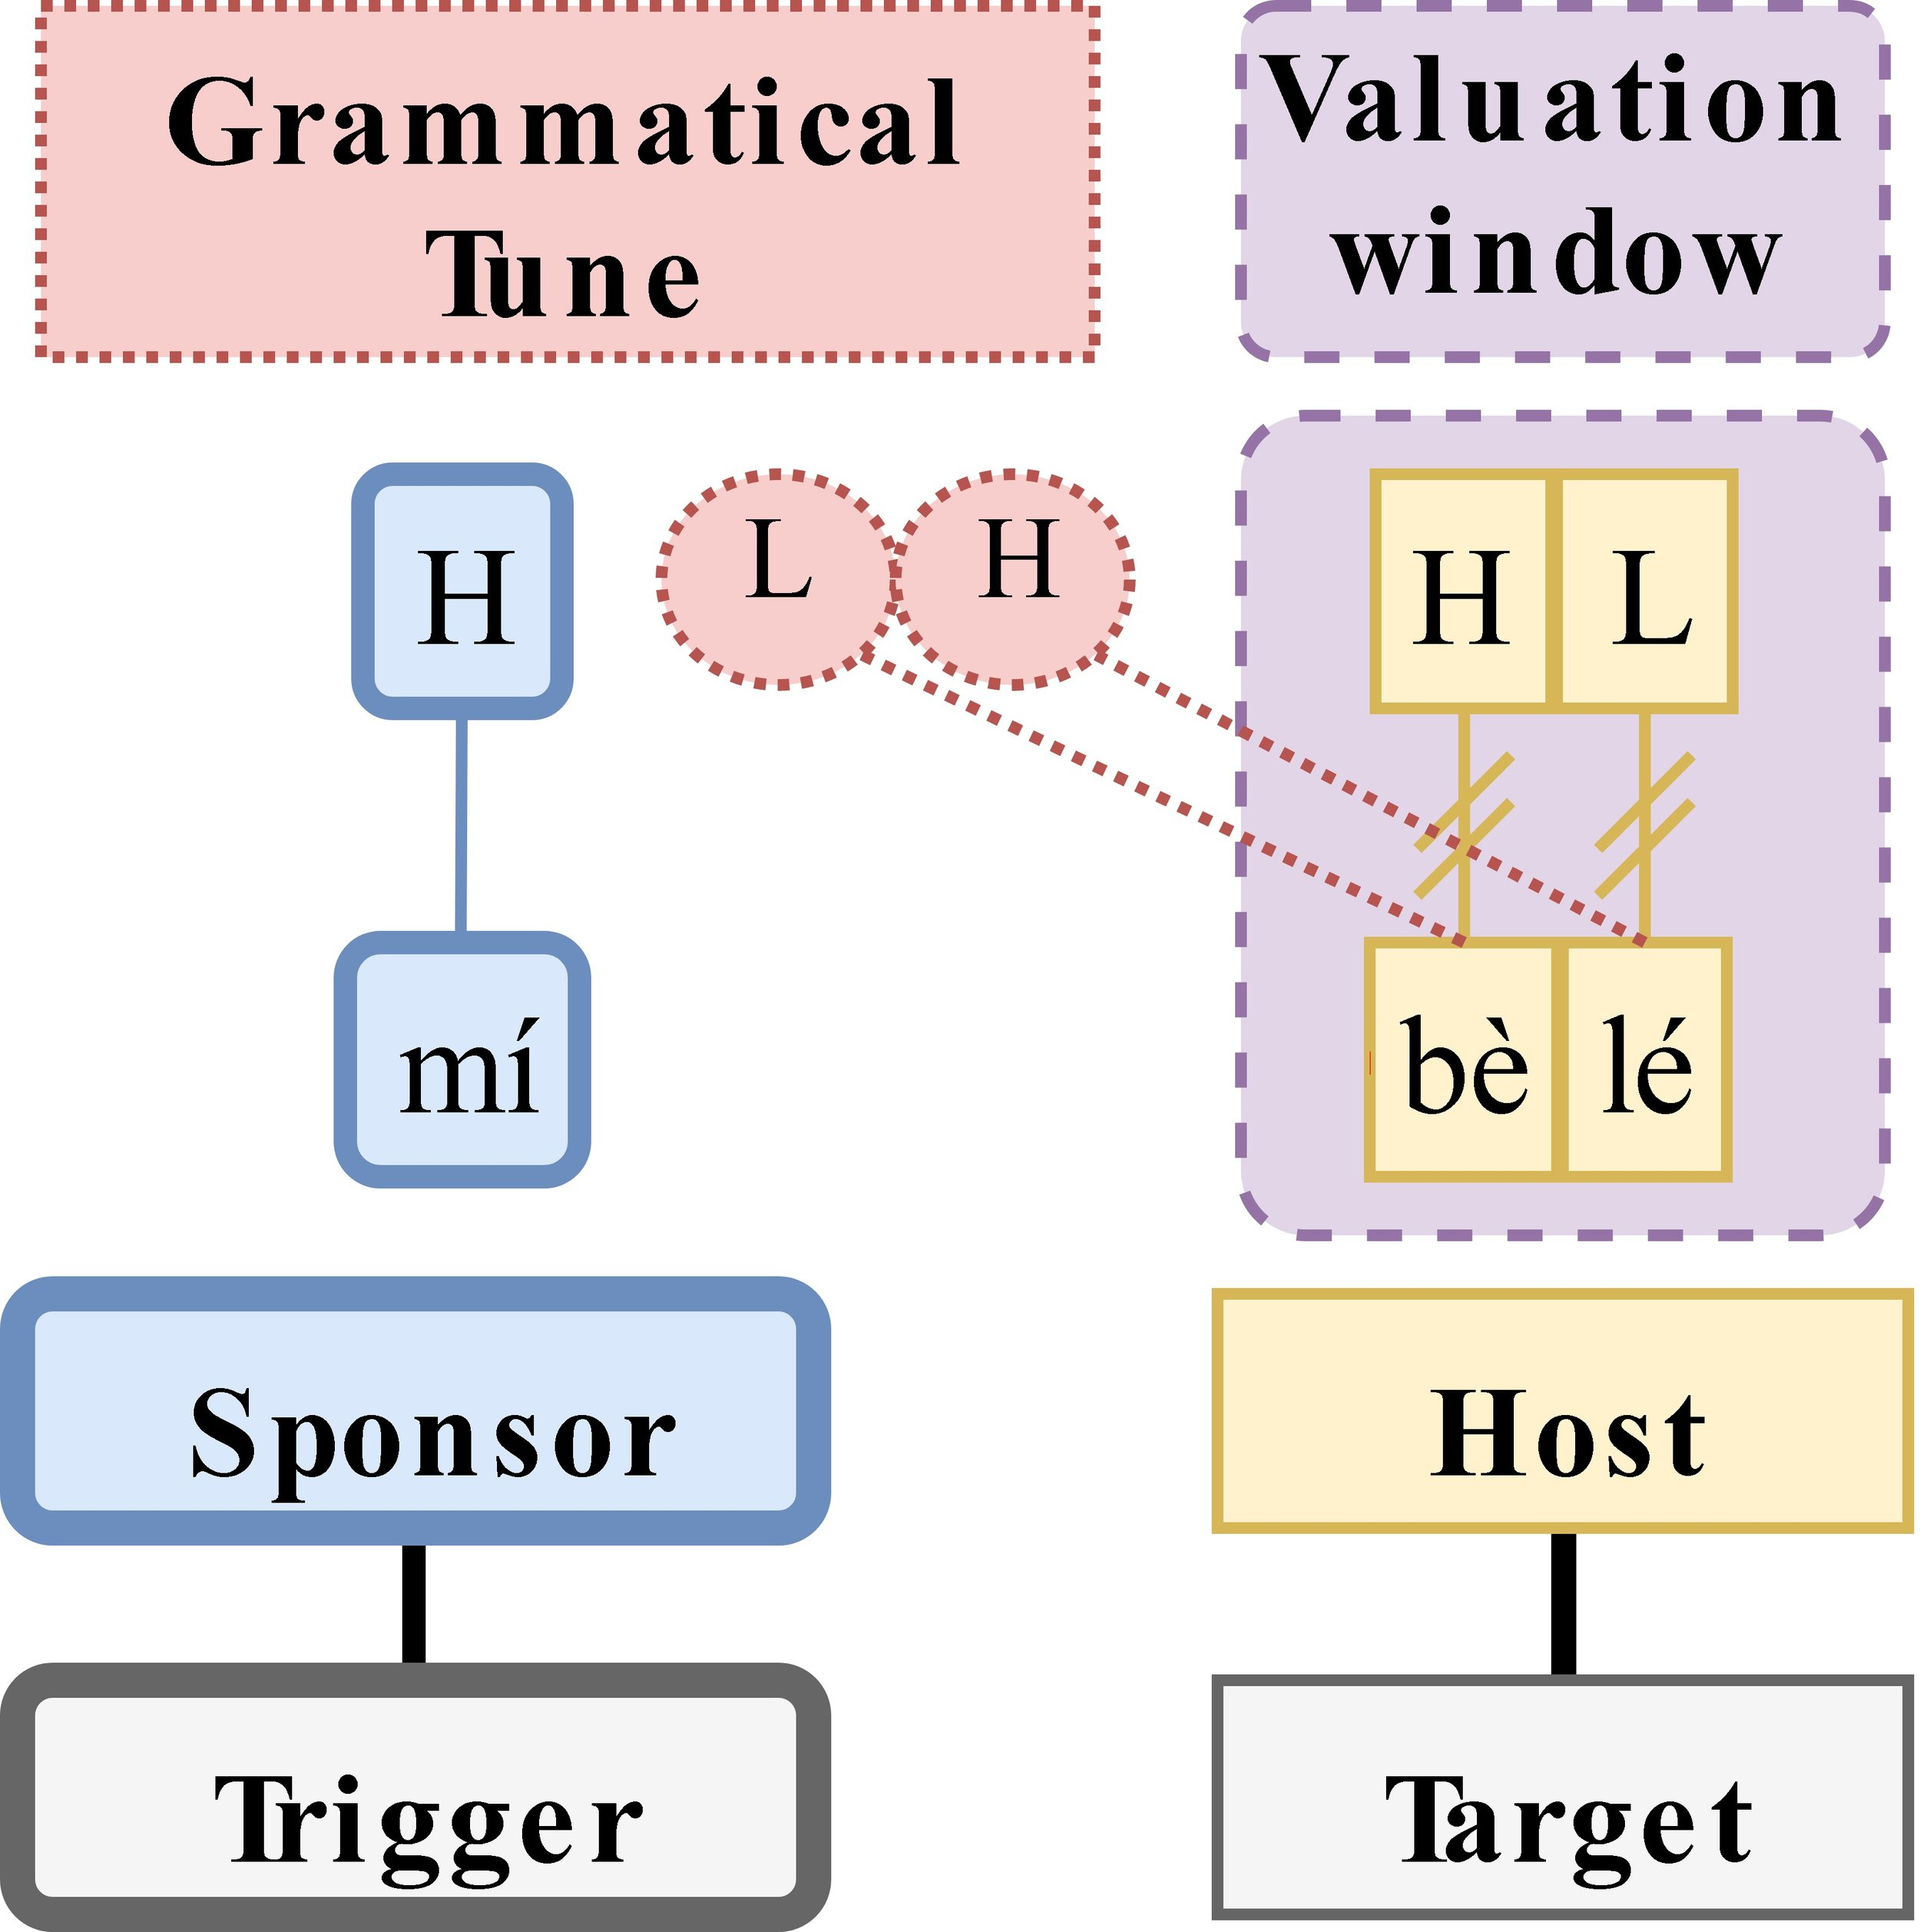 Grammatical tone components (Rolle 2018)